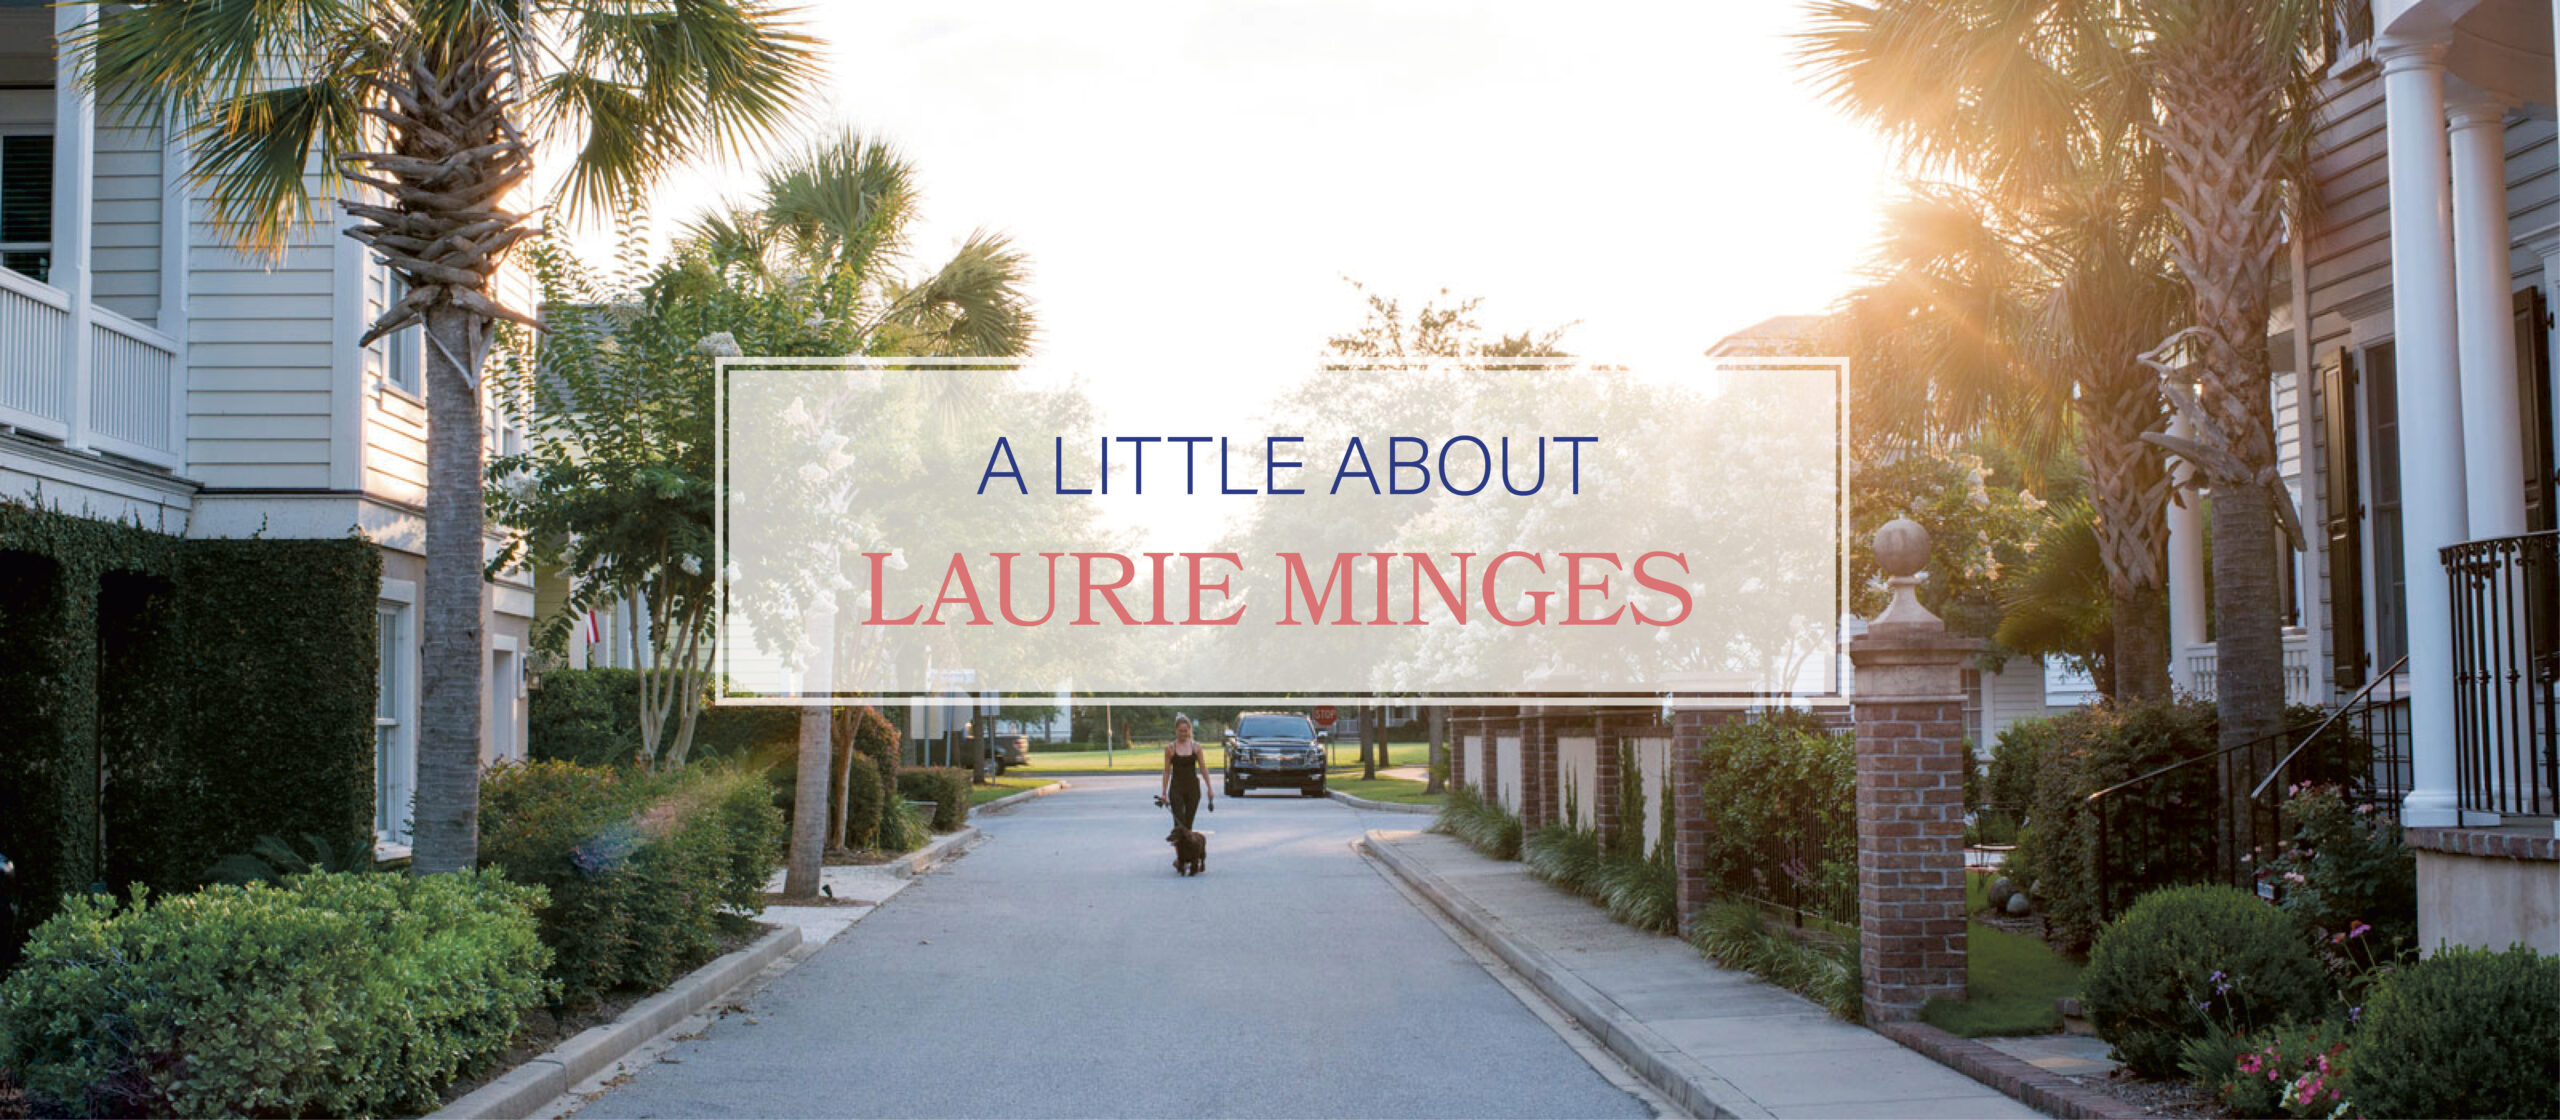 About Laurie Minges